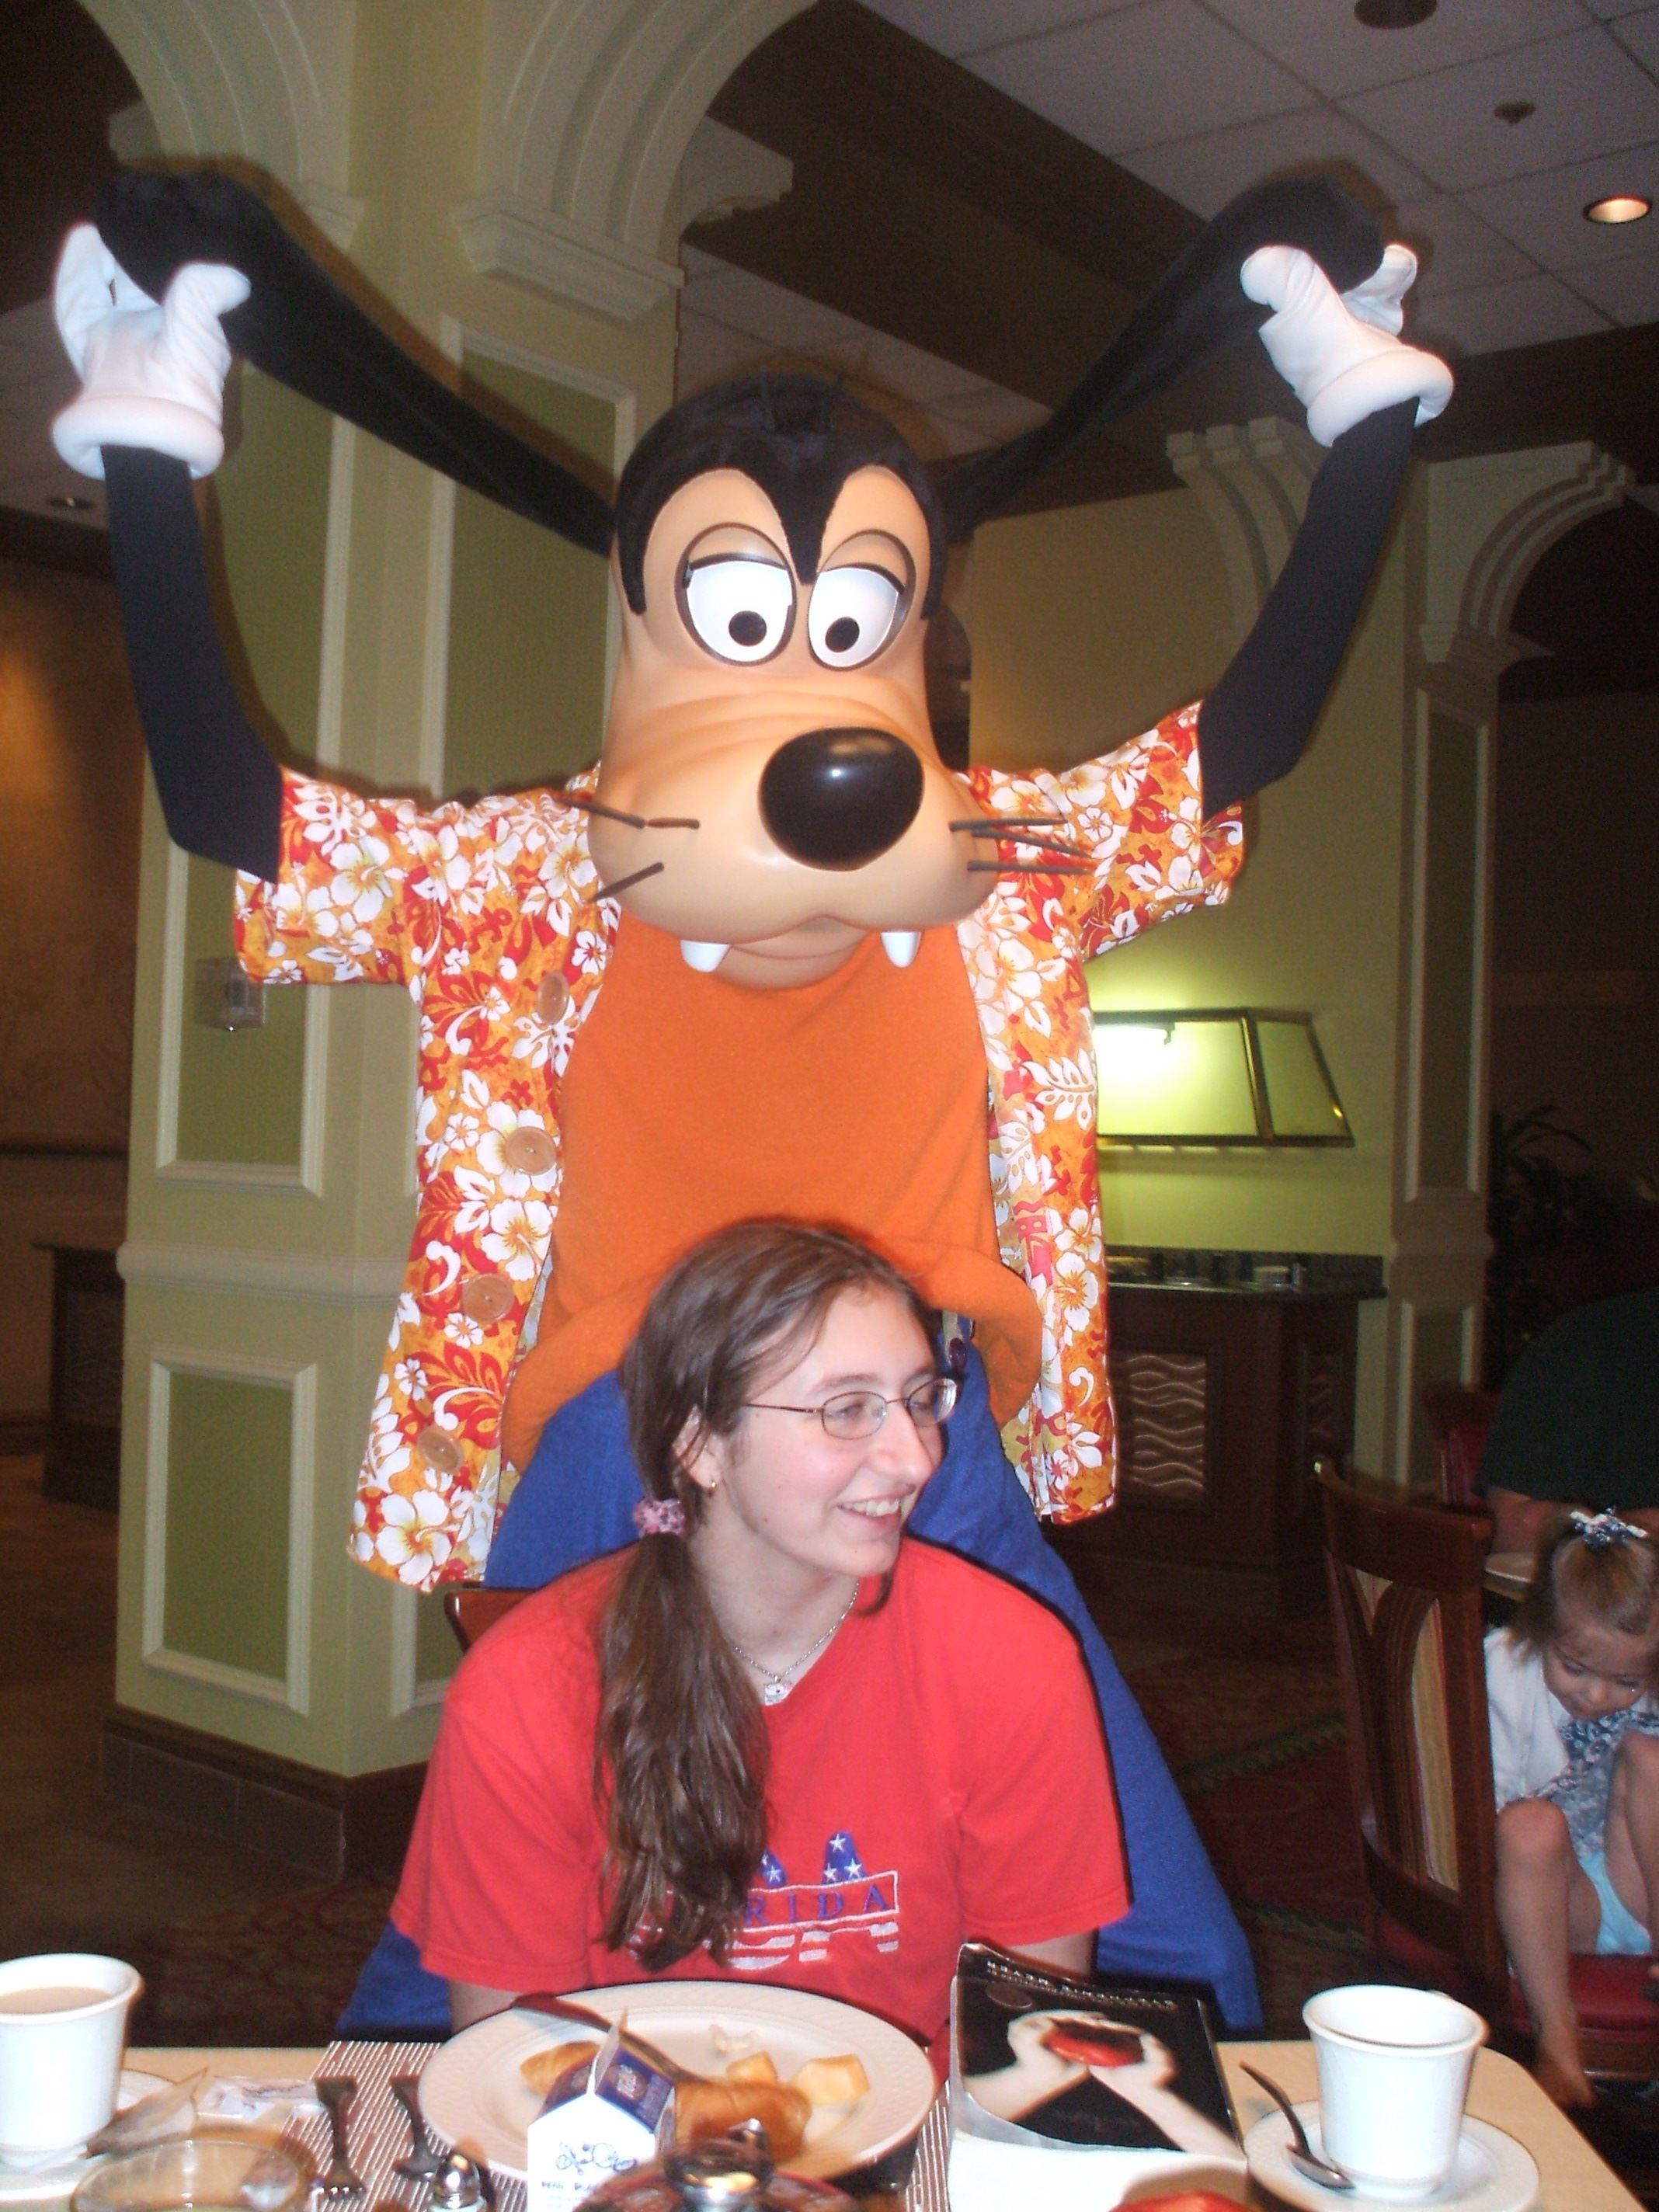 Goofy acting, well, goofy with # 1 Daughter